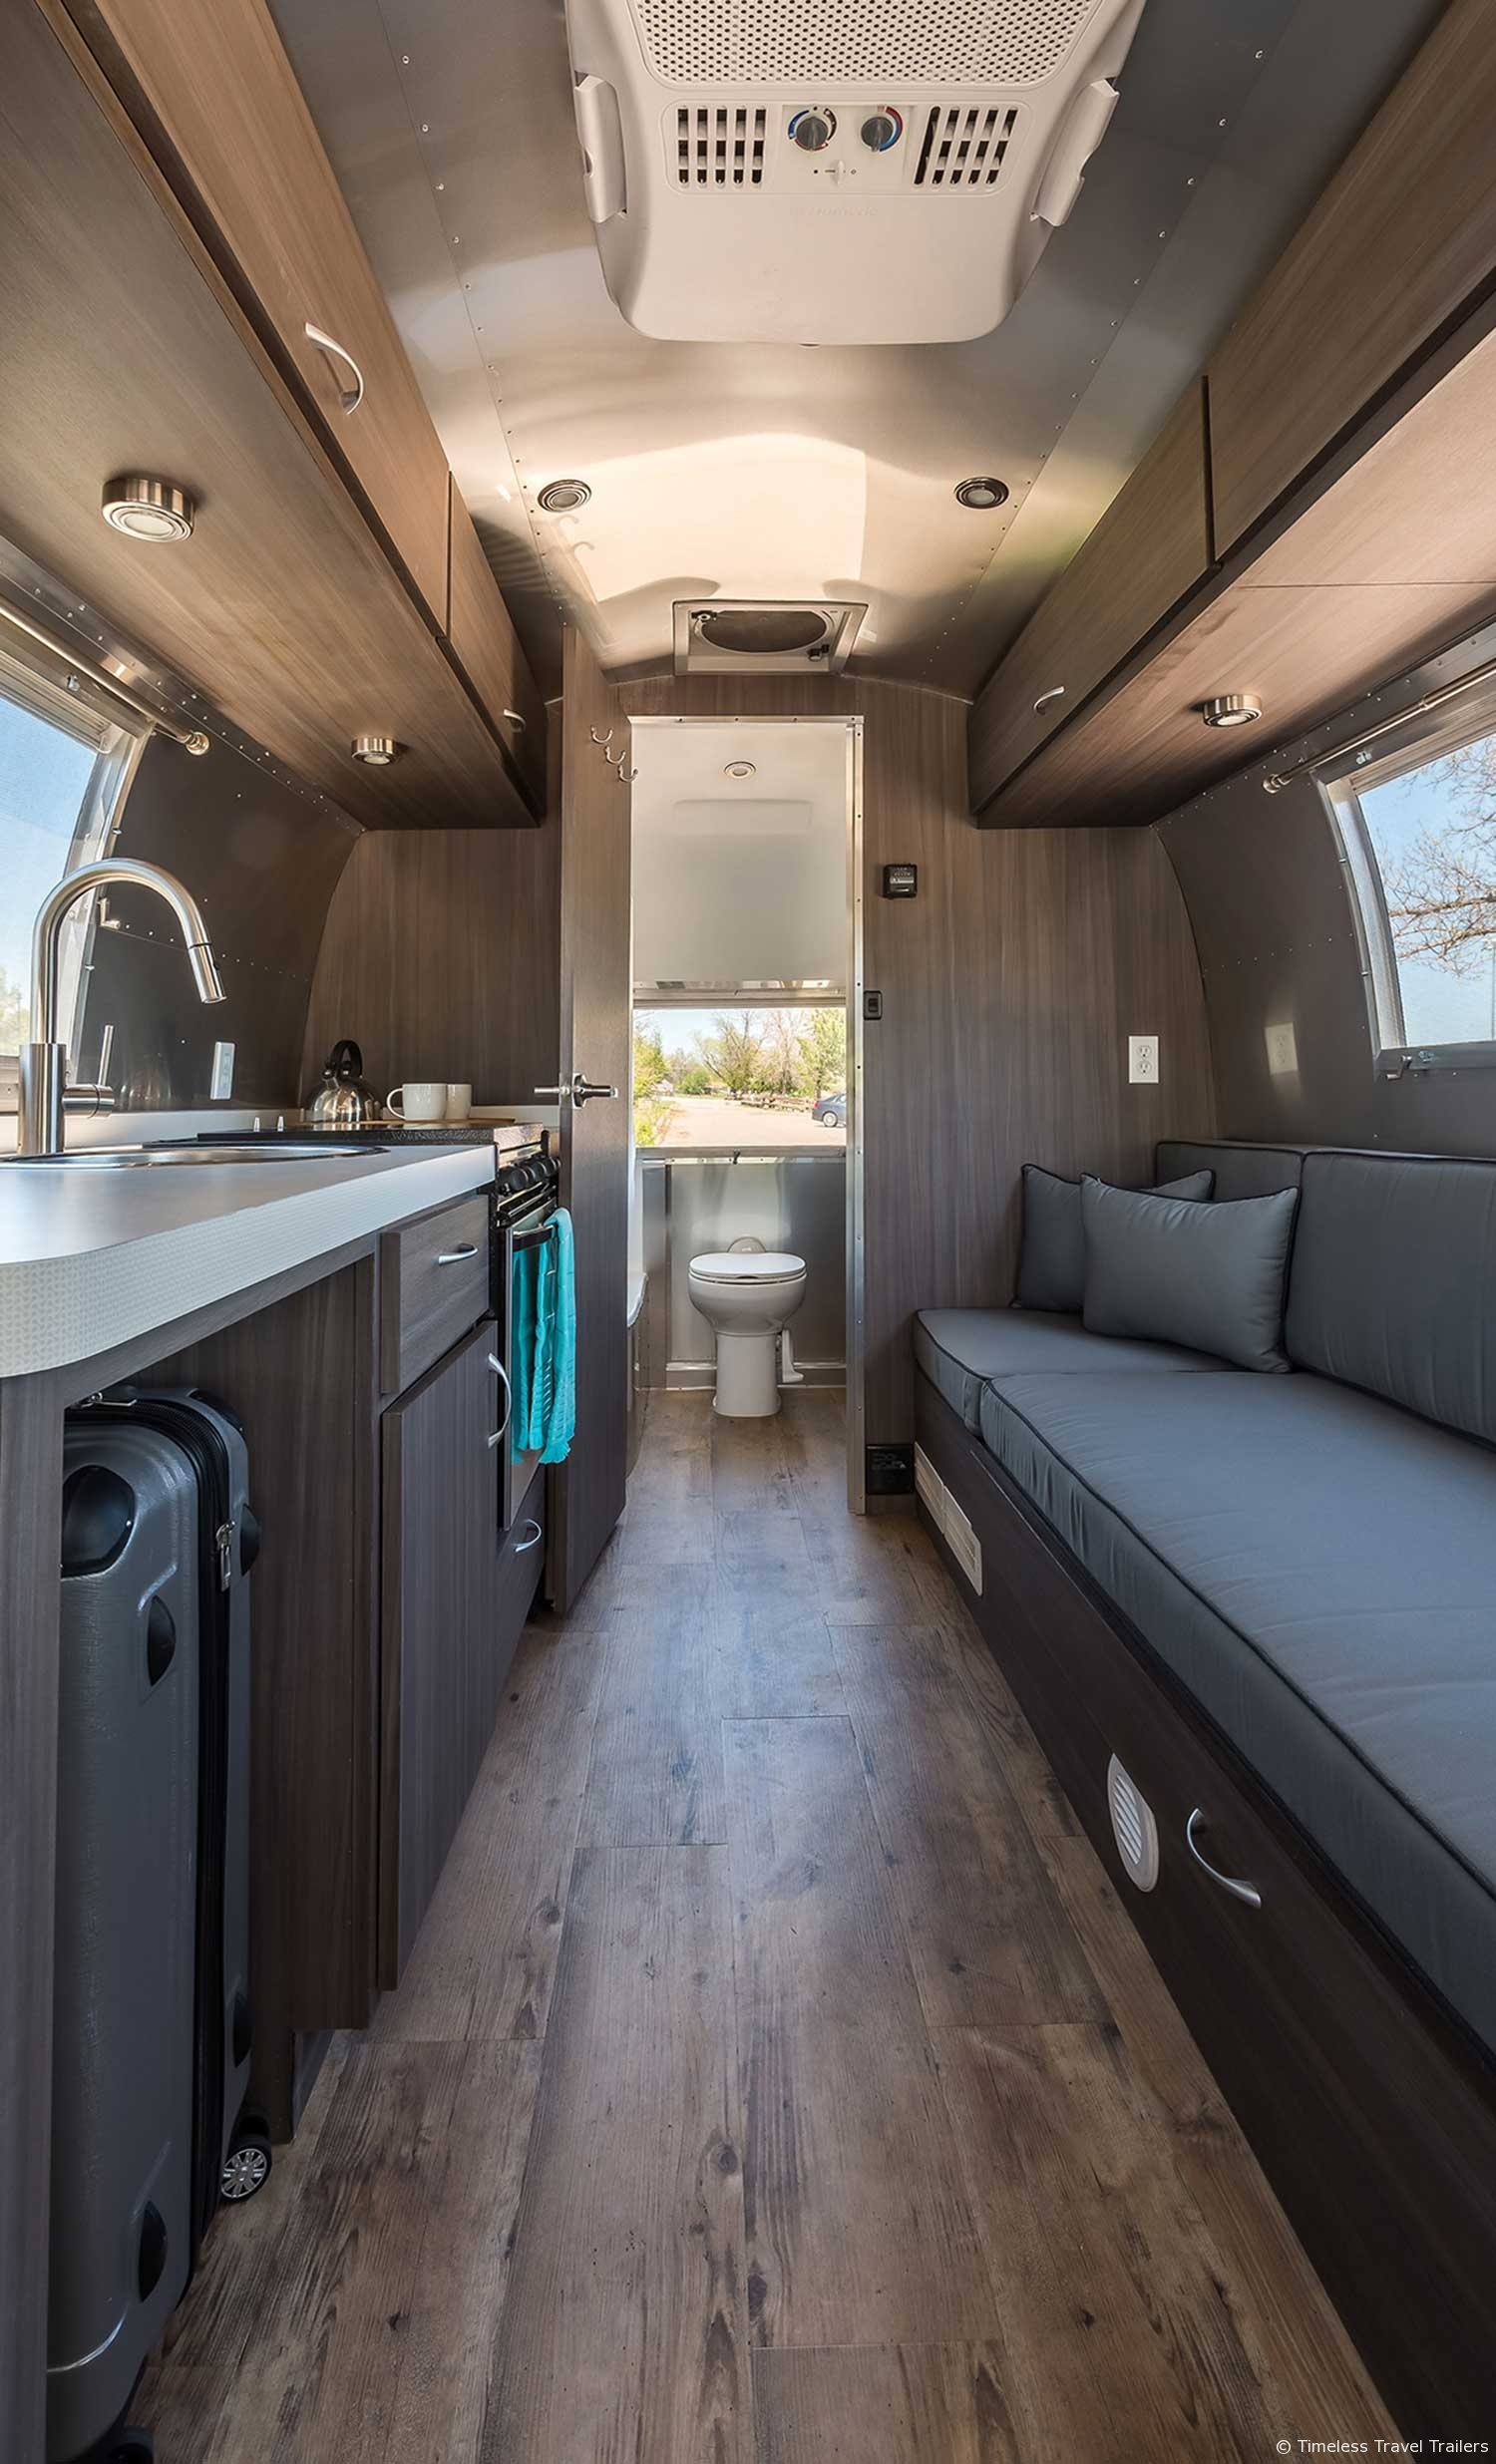 marble airfield guest lodging by timeless travel trailers. Black Bedroom Furniture Sets. Home Design Ideas